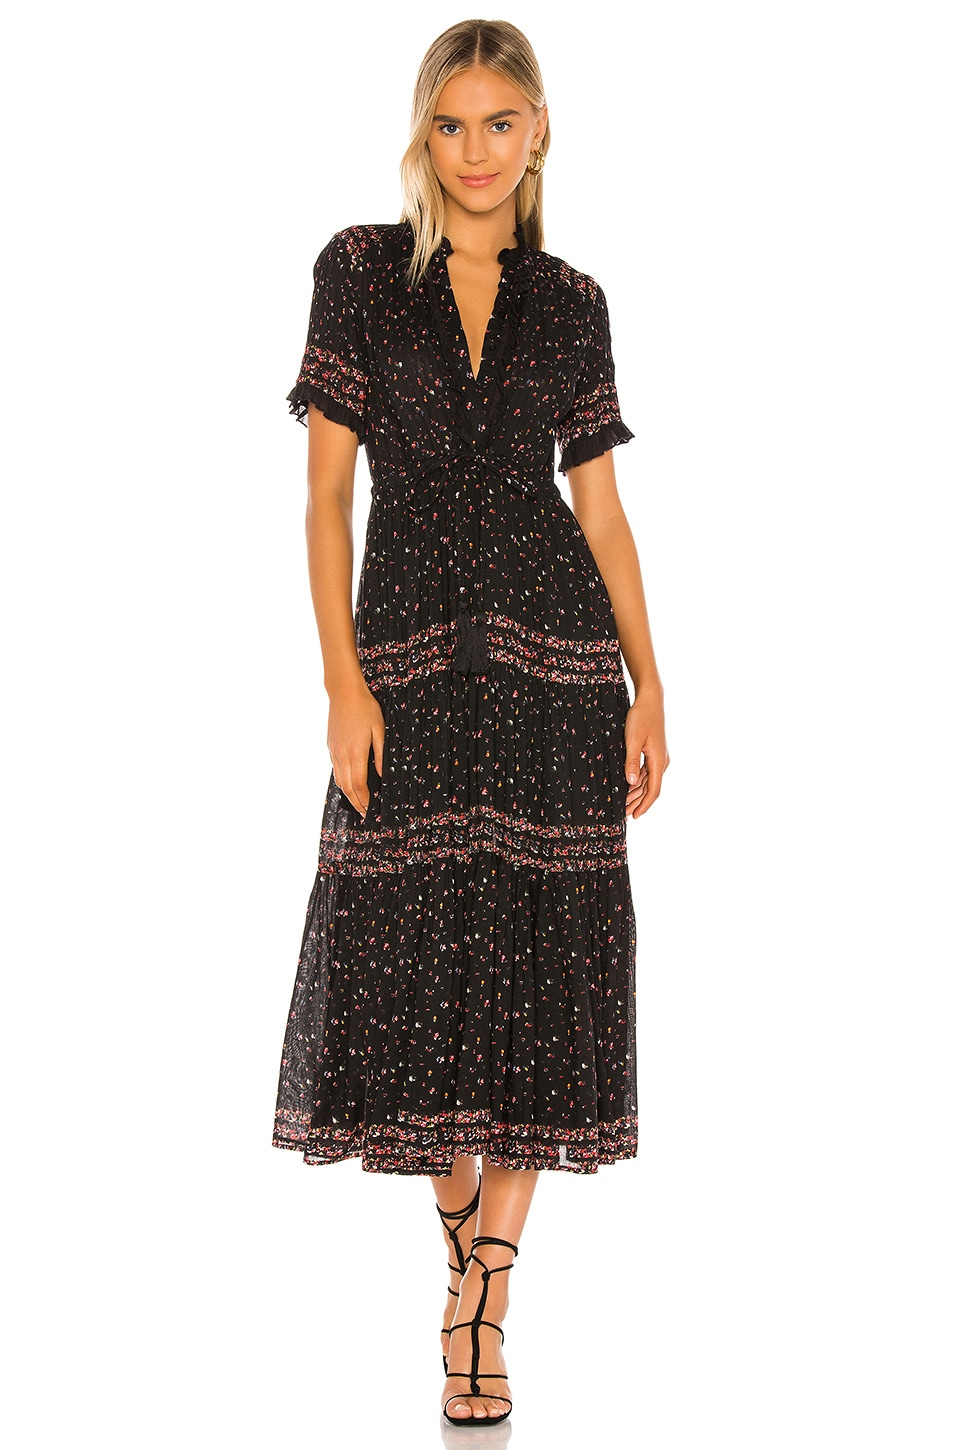 Free People Rare Feeling Maxi Dress en Black Combo